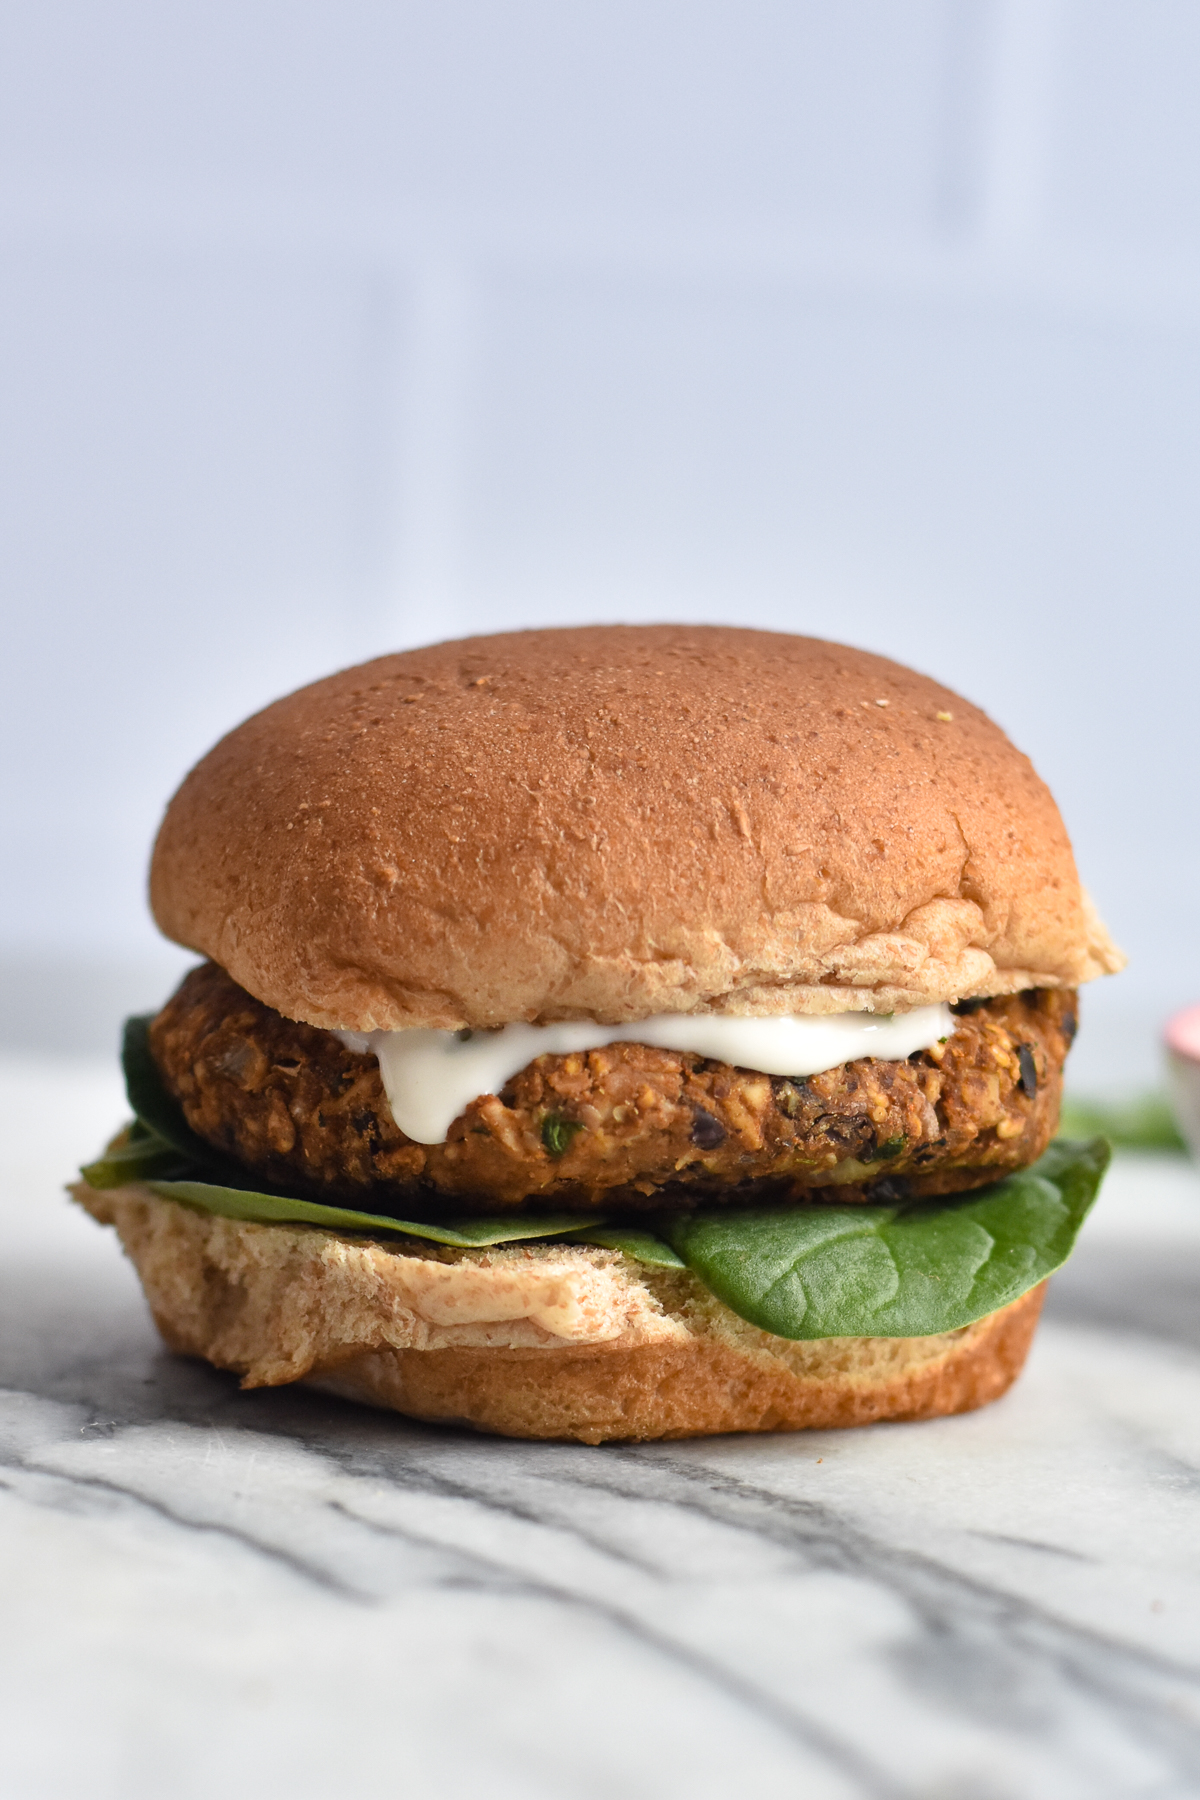 Black beans burgers made with pumpkin, oats and walnuts topped with a cilantro sauce.